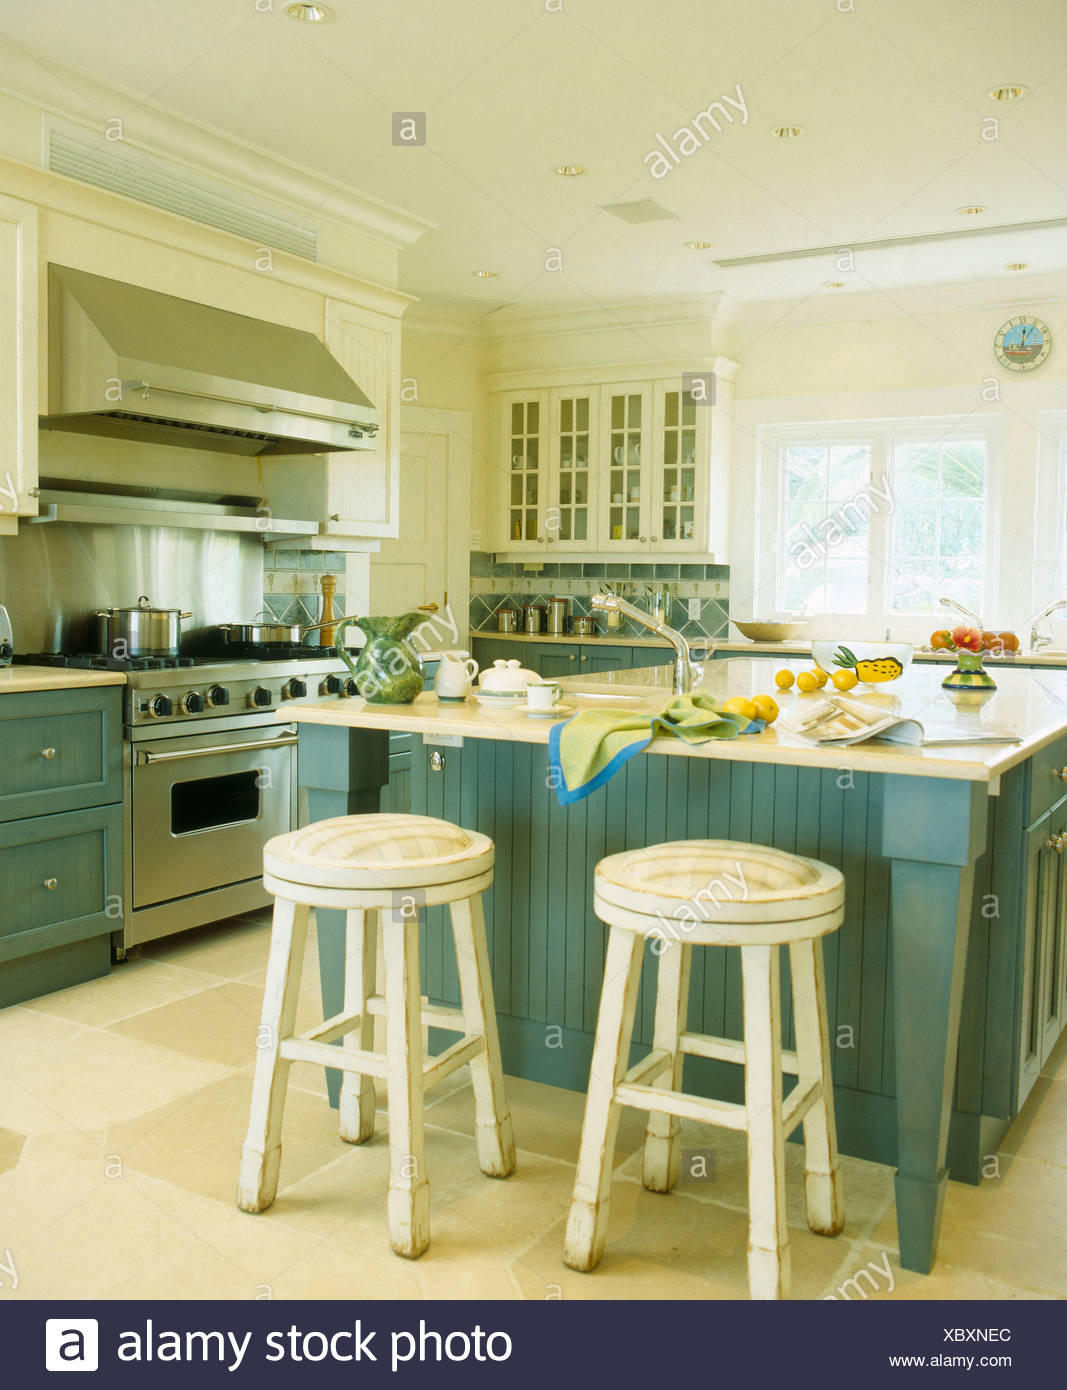 White Wooden Stools At Breakfast Bar On Island Unit In White Bermudan Kitchen With Blue Green Fitted Units And Flagstone Floor Stock Photo Alamy